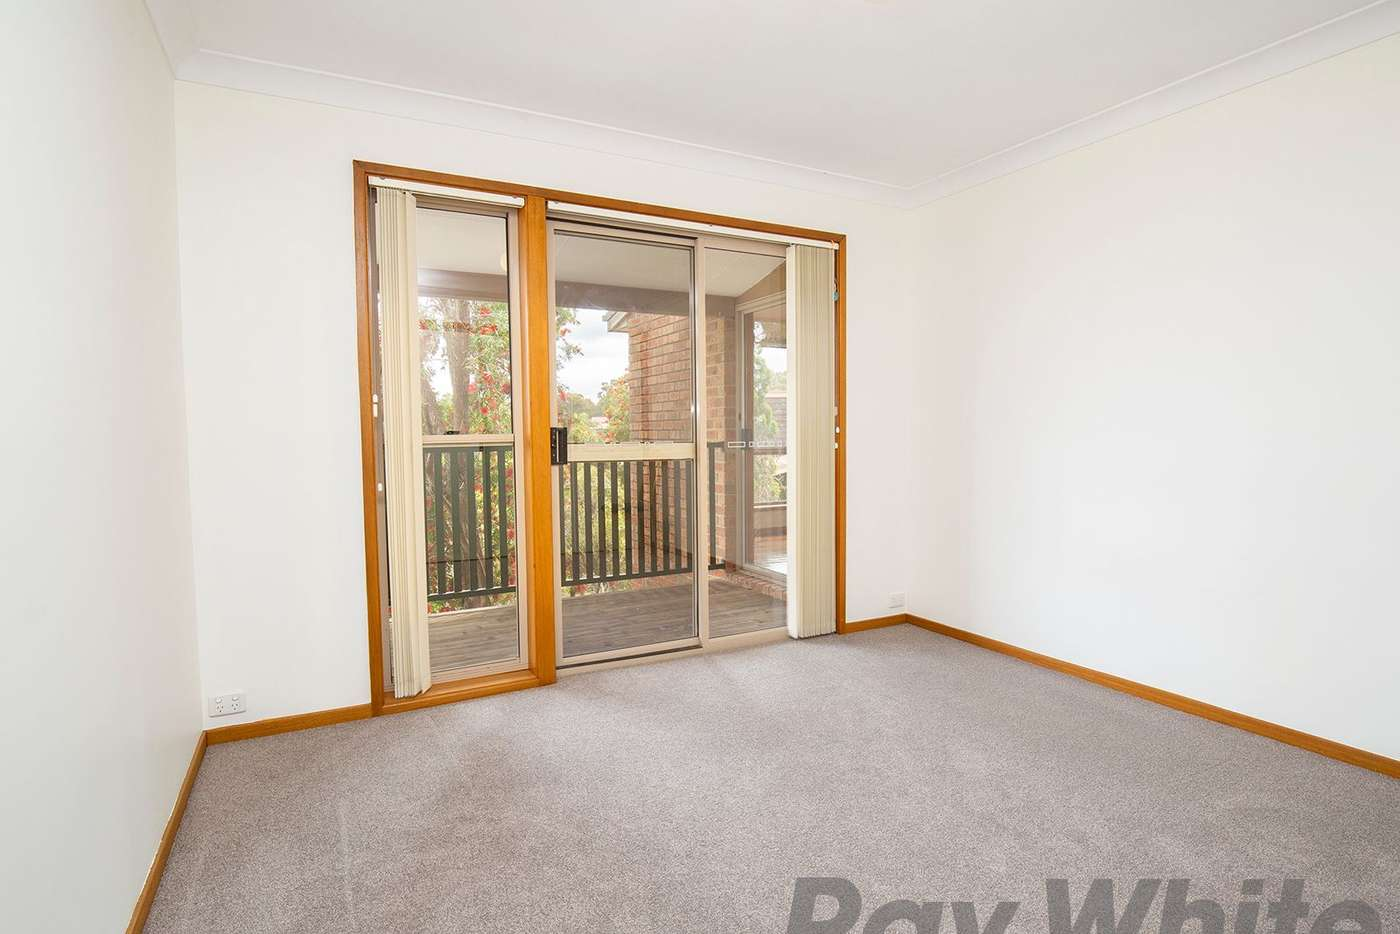 Seventh view of Homely house listing, 19 Andrew Close, North Lambton NSW 2299